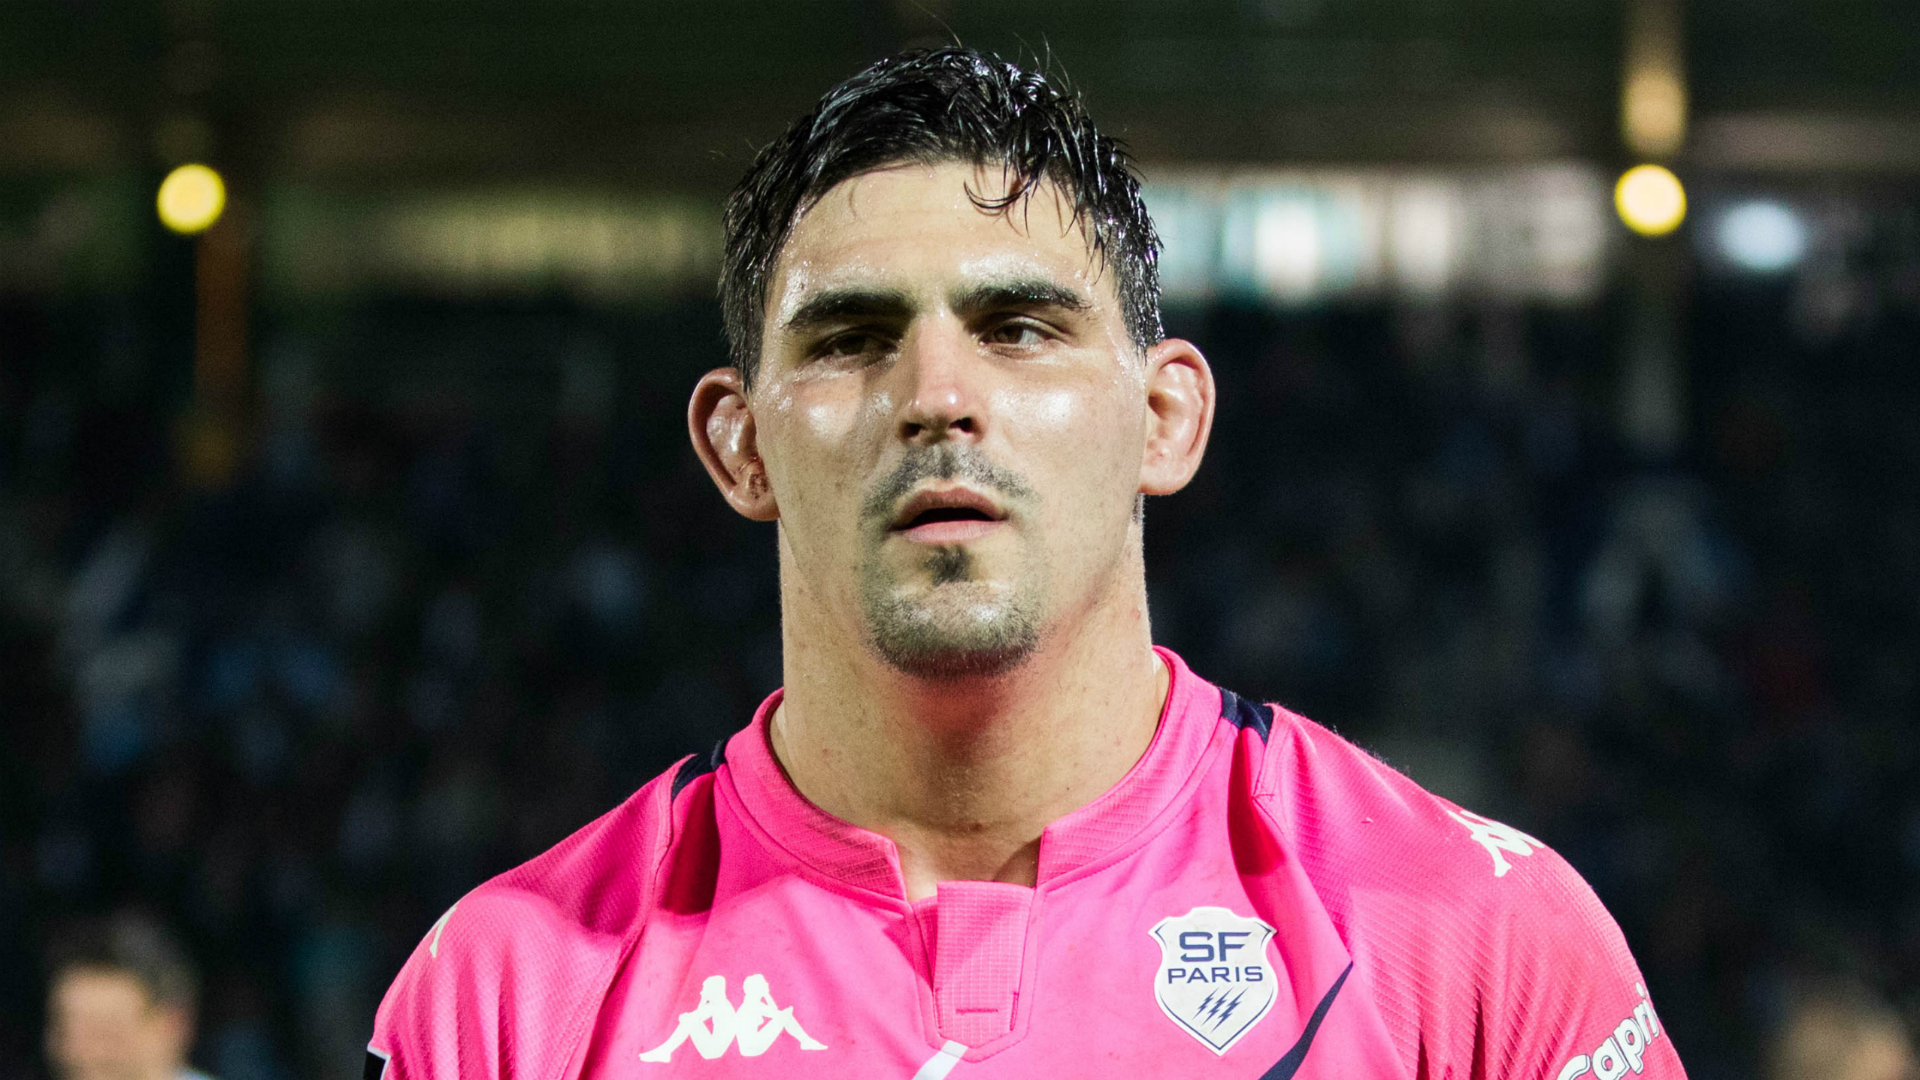 Matera facing Stade Francais questions after being stripped of Argentina captaincy